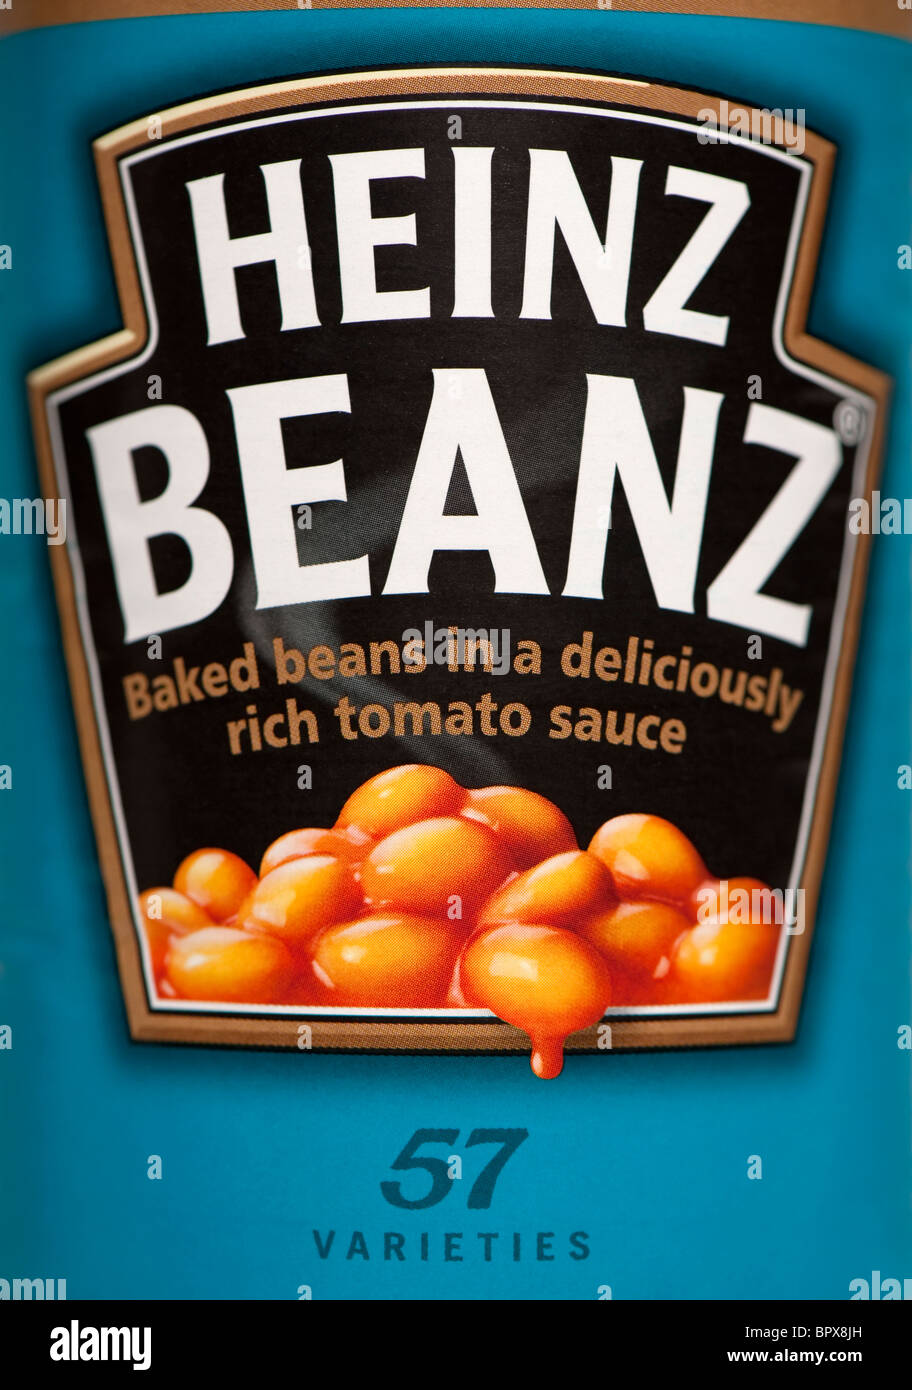 Close-up of a tin of Heinz Baked Beans. 57 Varieties. - Stock Image